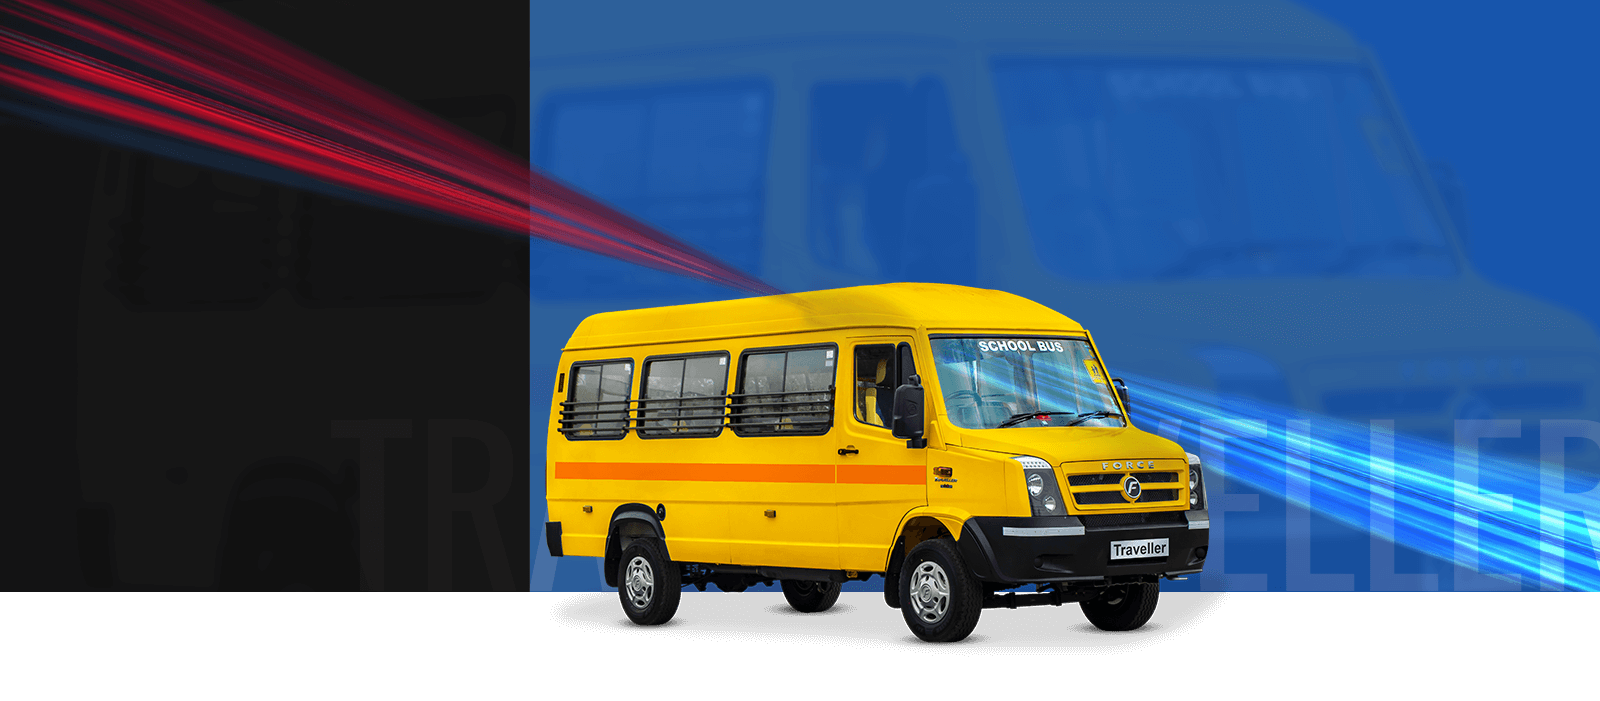 hight resolution of traveller school bus 3350